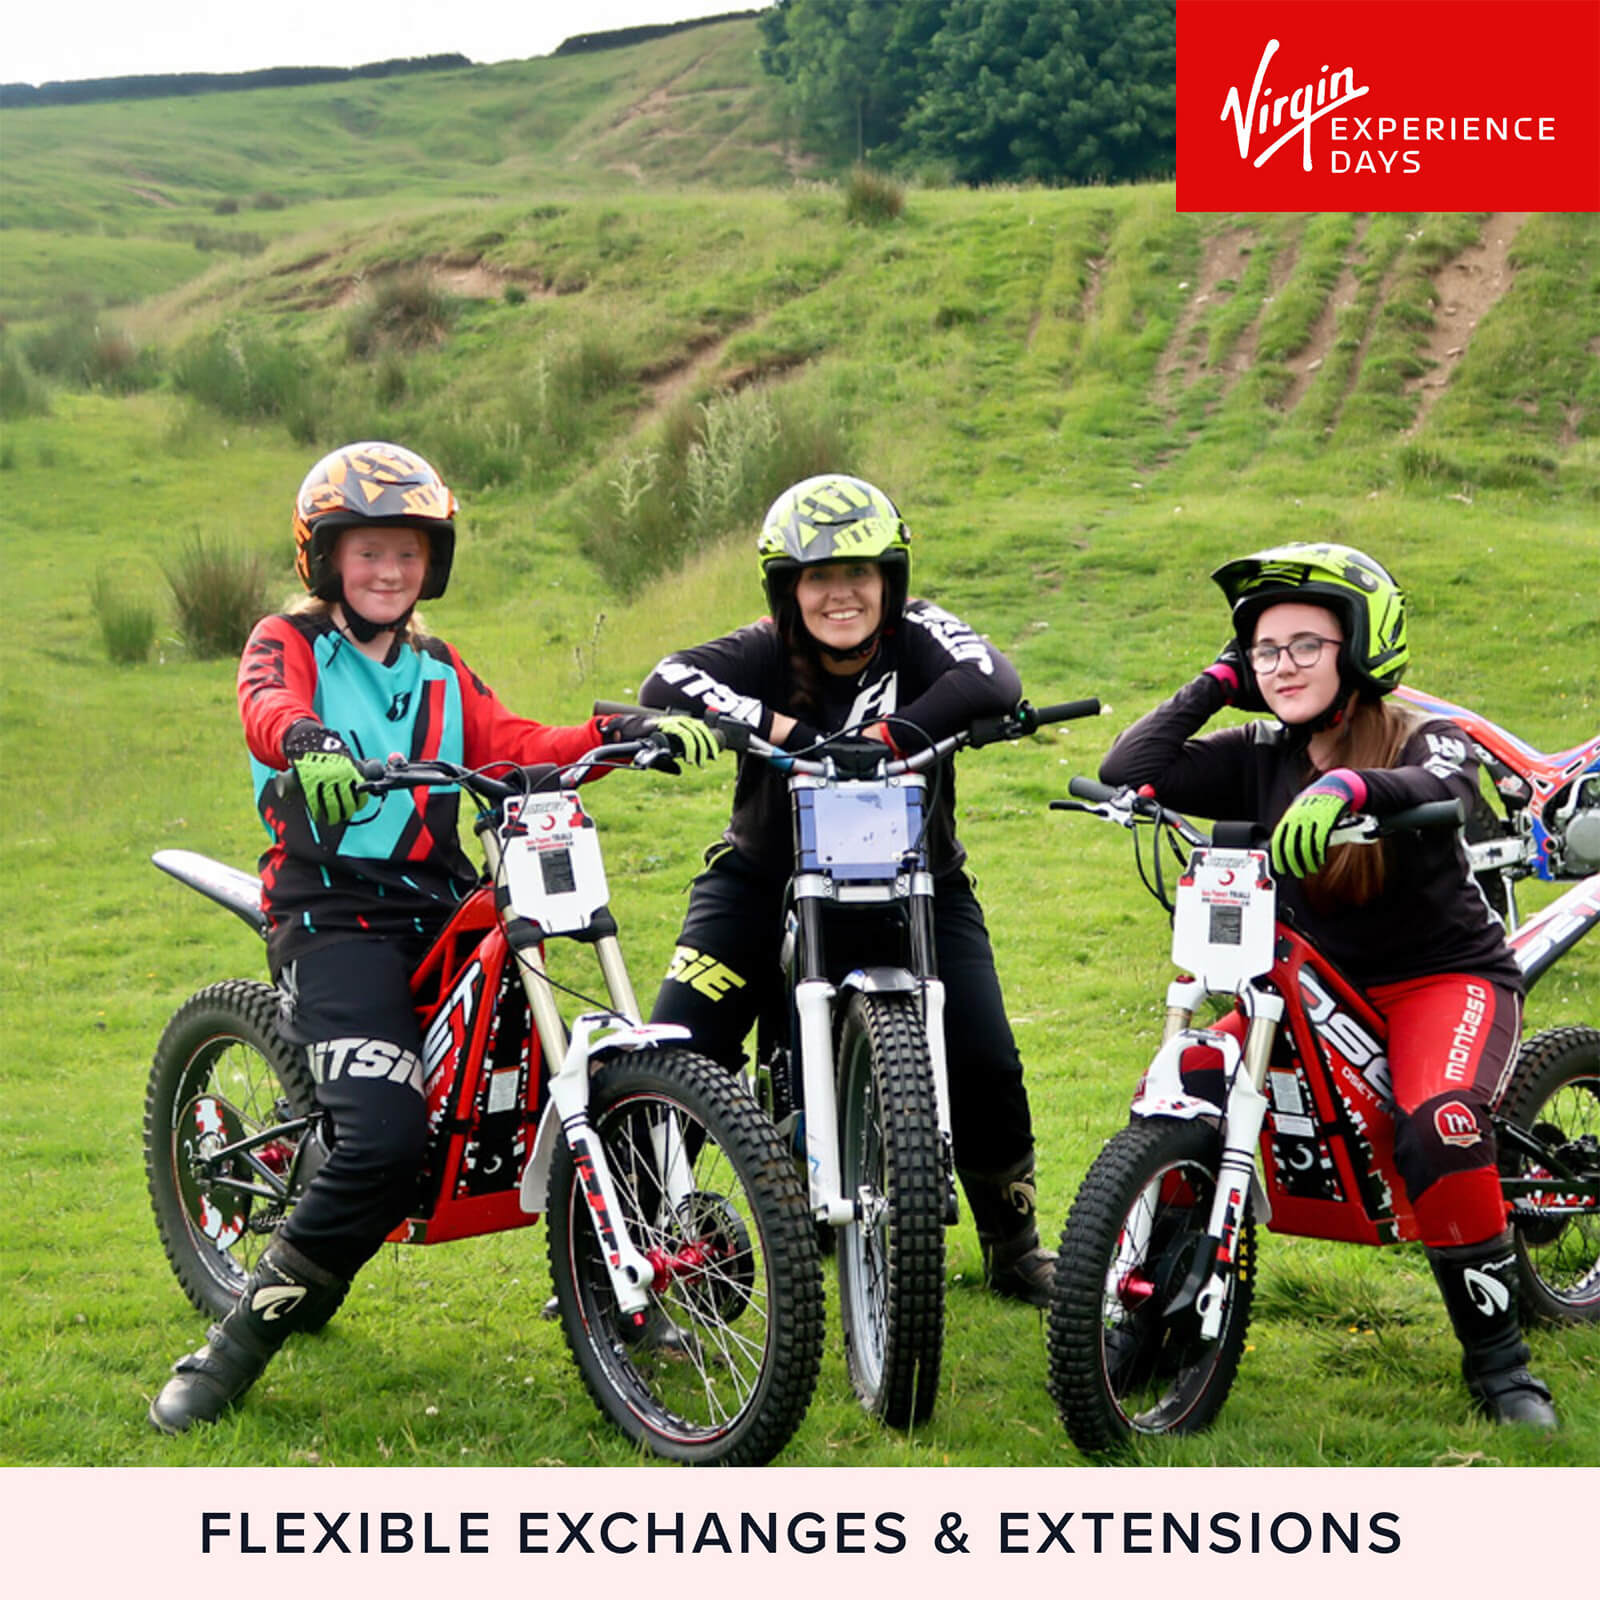 Image of Full Day Beginners Trial Bike Experience